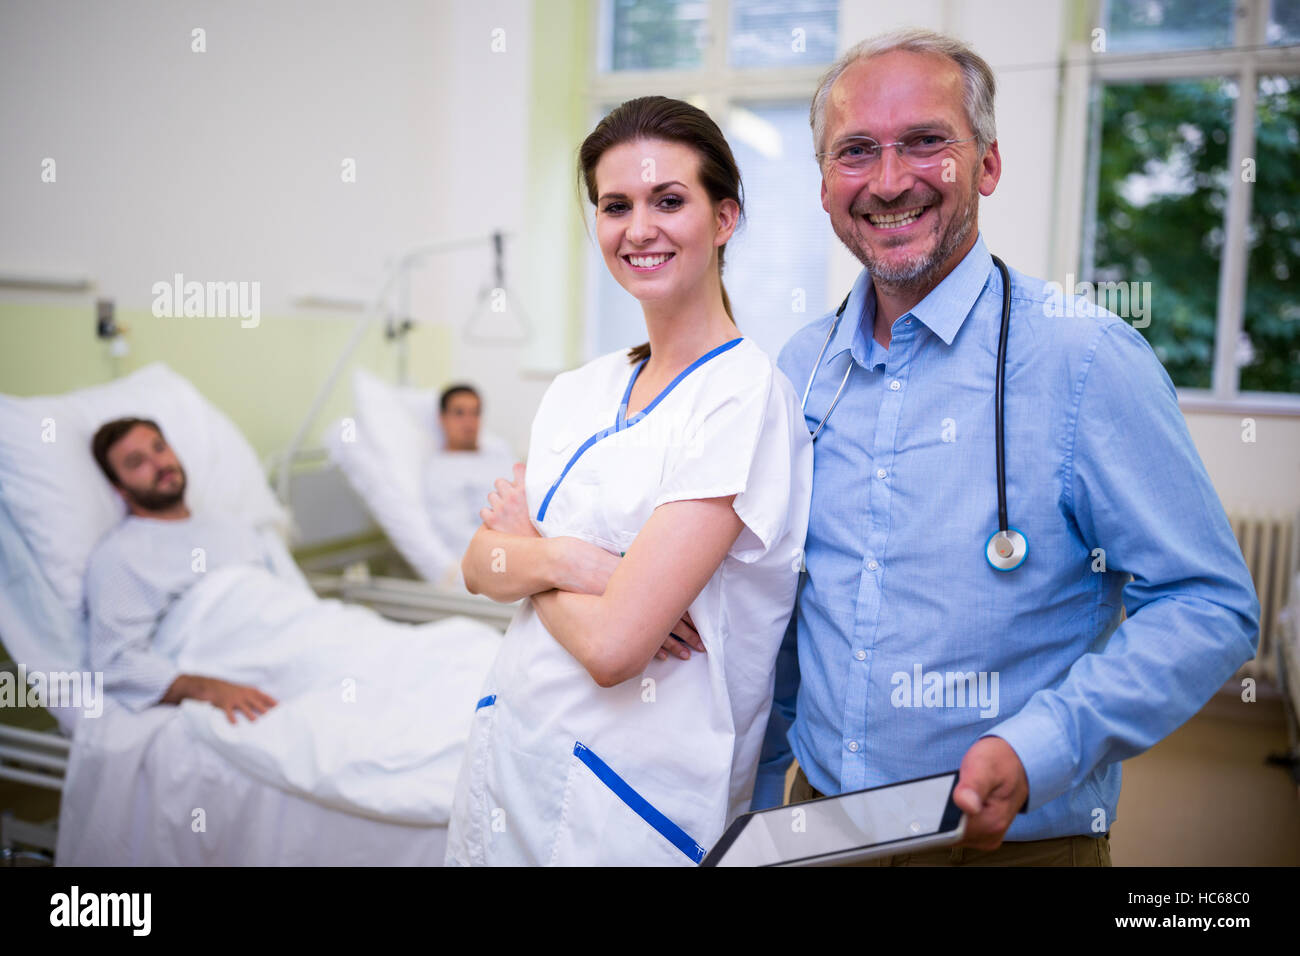 Smiling doctor and nurse standing in ward - Stock Image